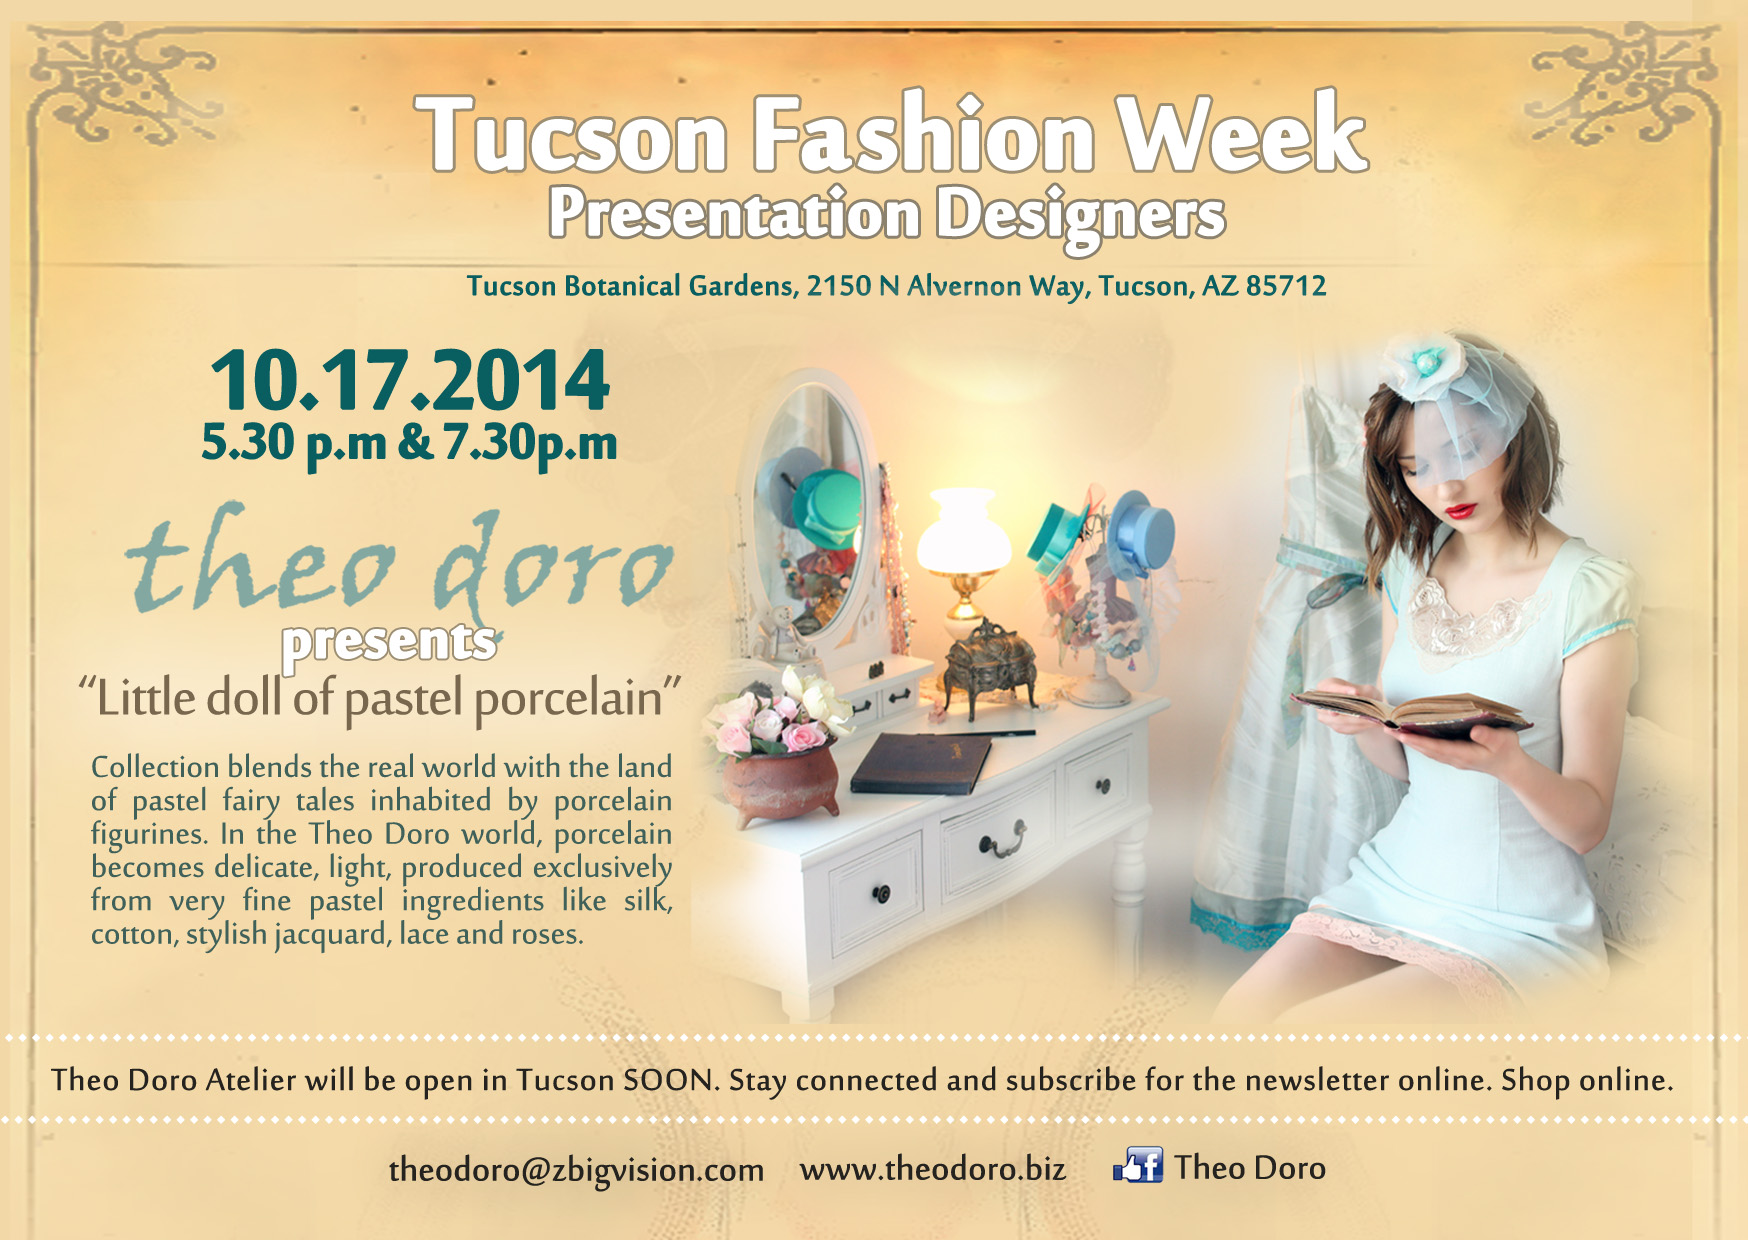 invitation Tucson Fashion Week